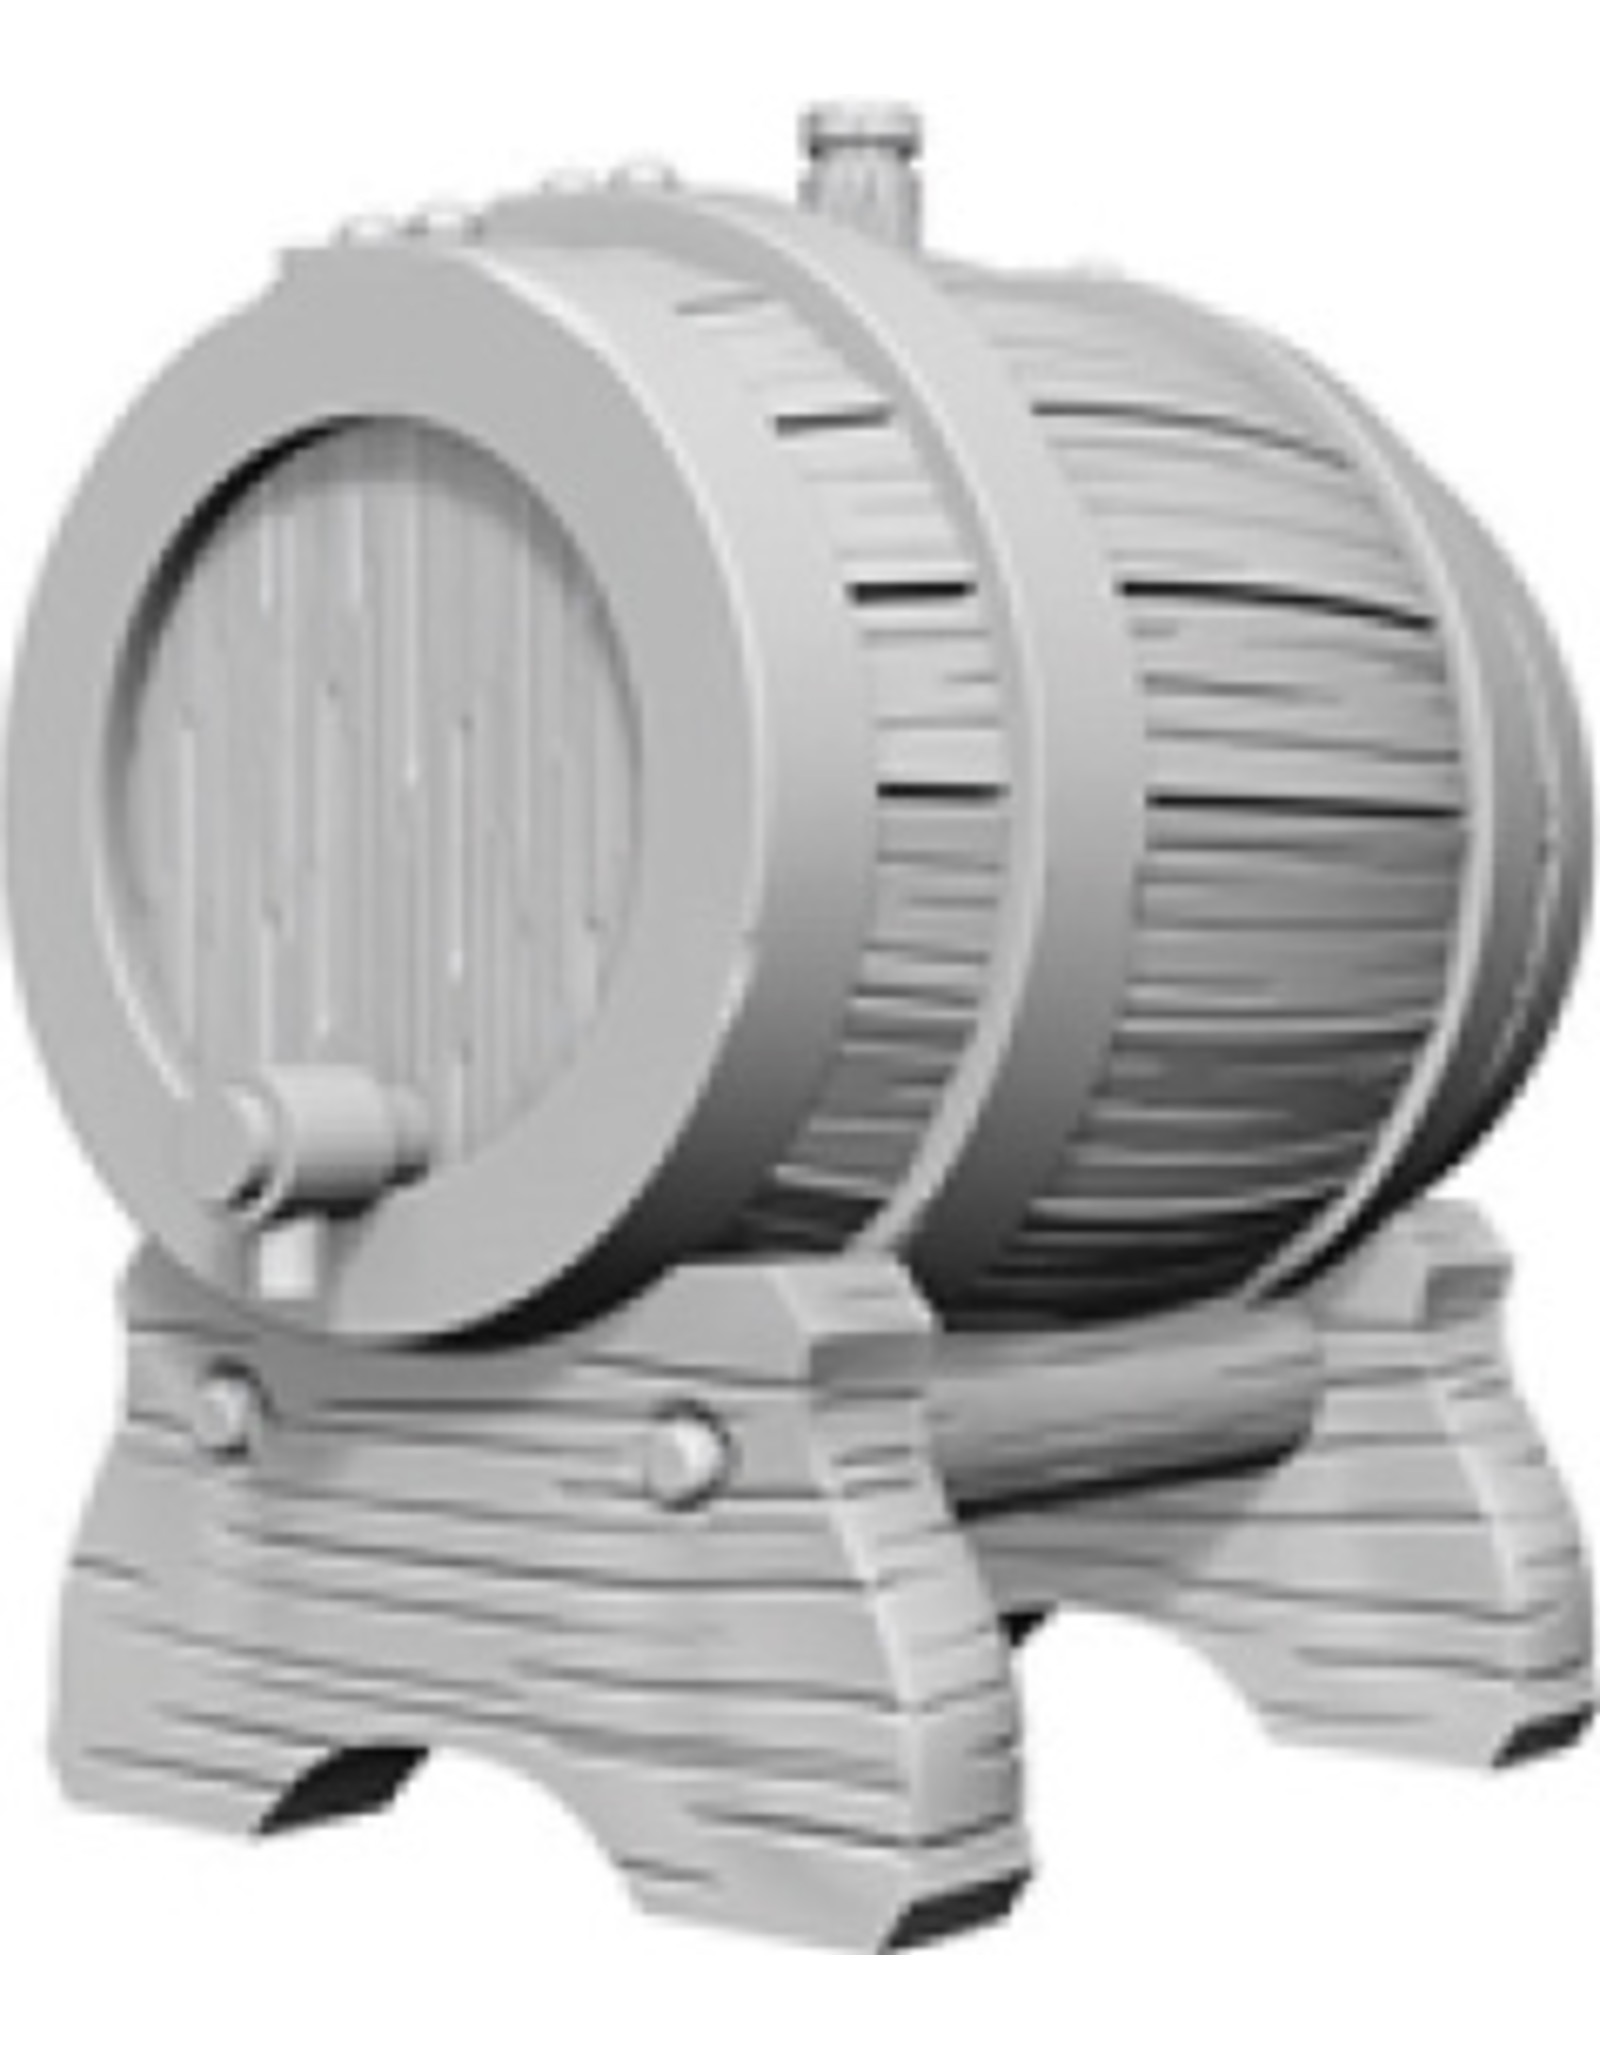 Wiz Kids WZK DC: Keg Barrels